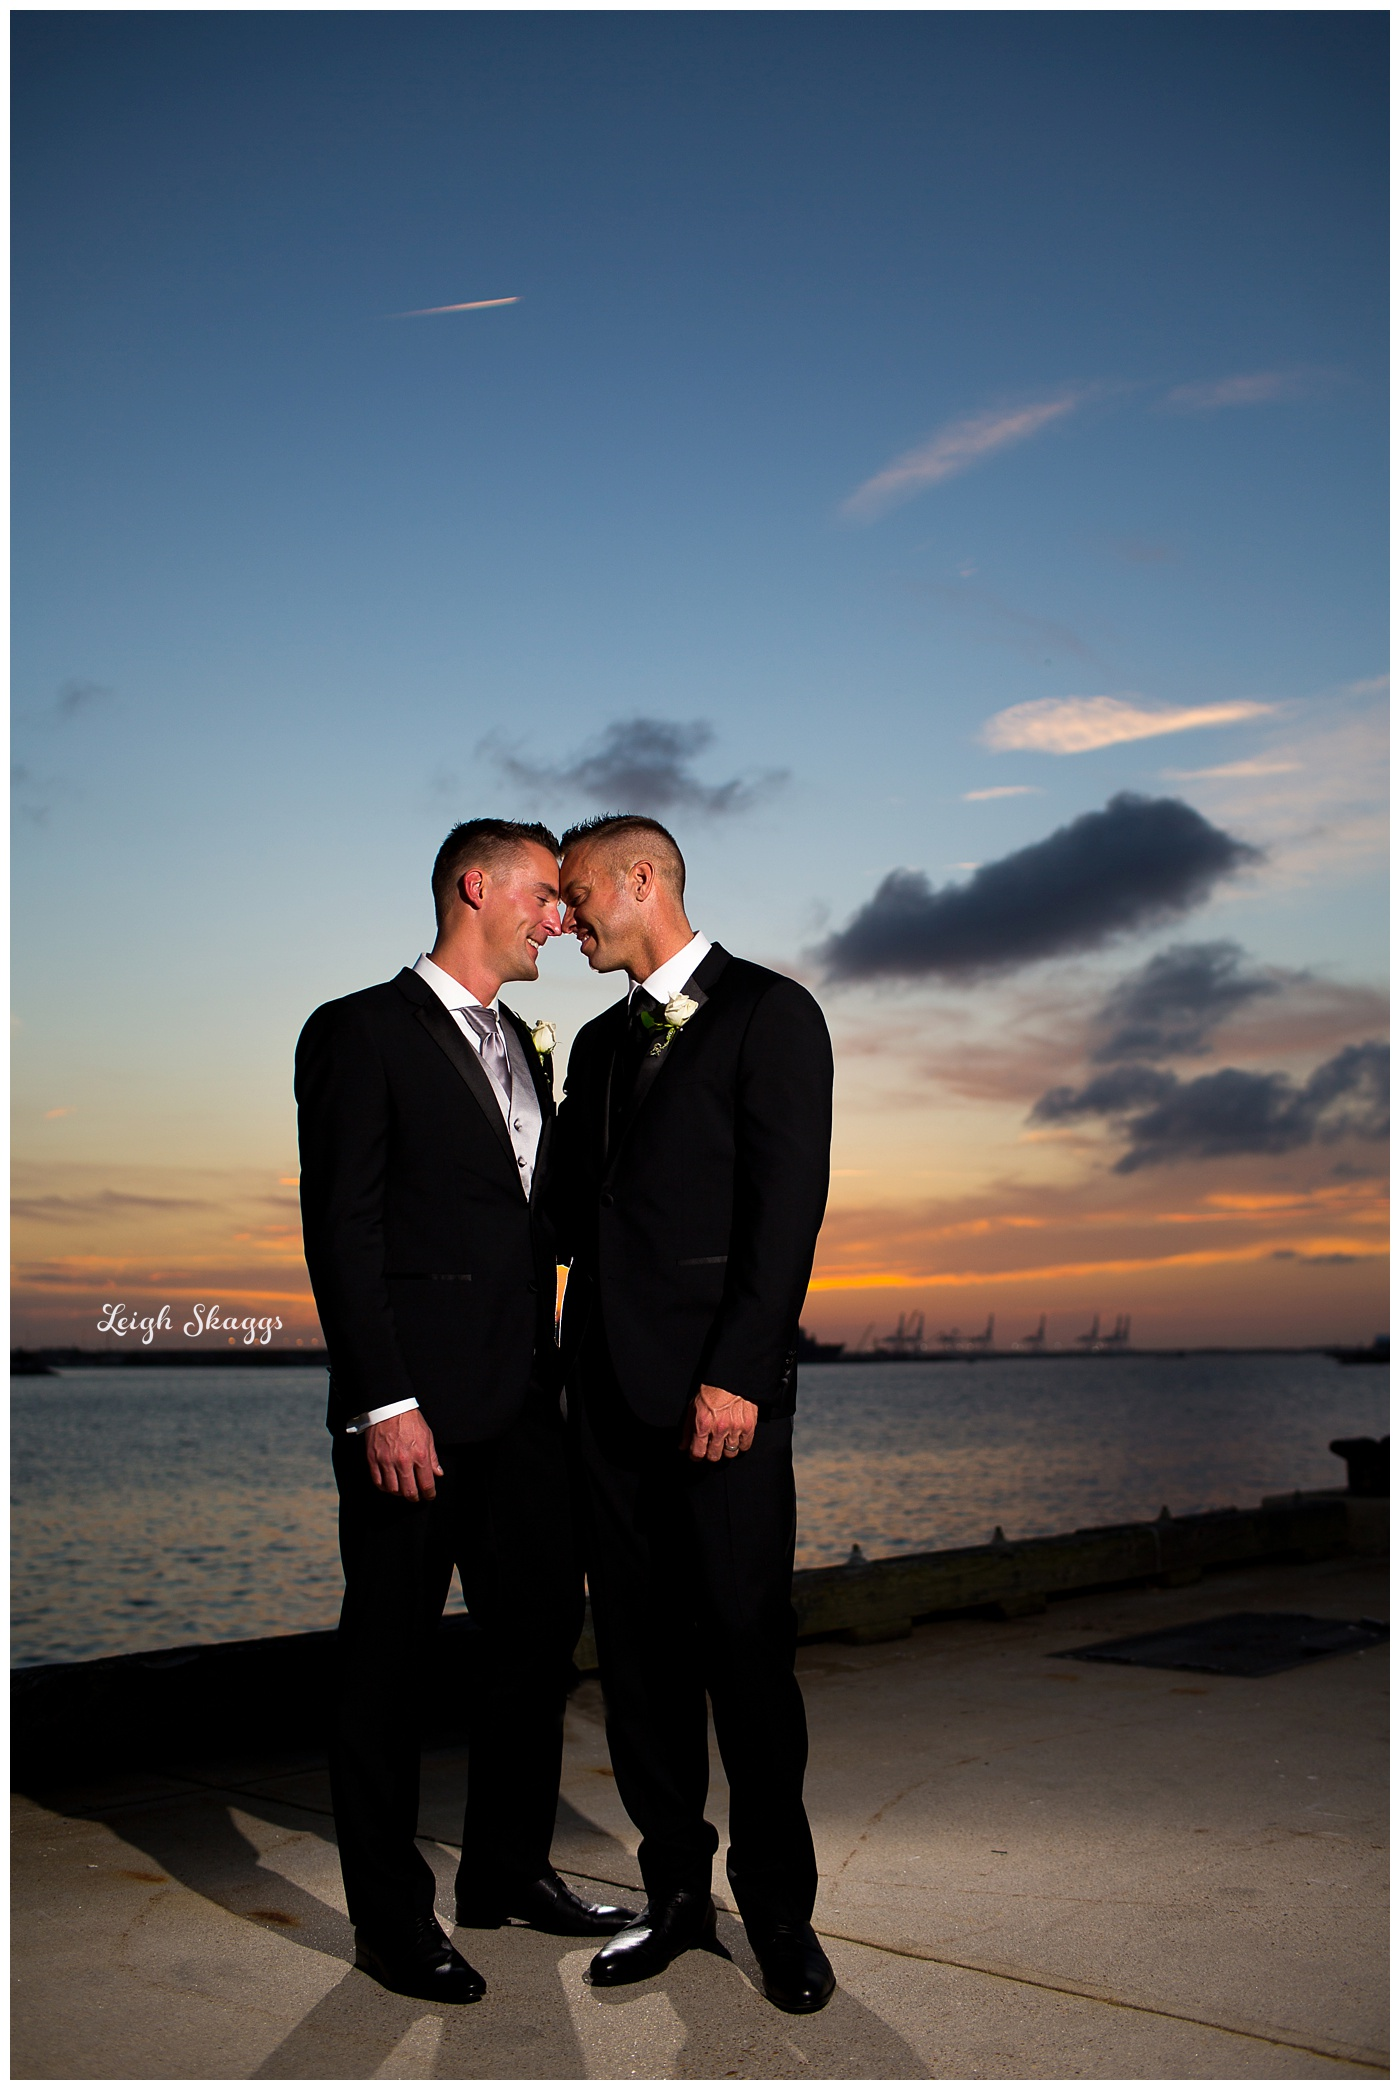 David and Tim are Married!  A sneak peek from the Half Moone